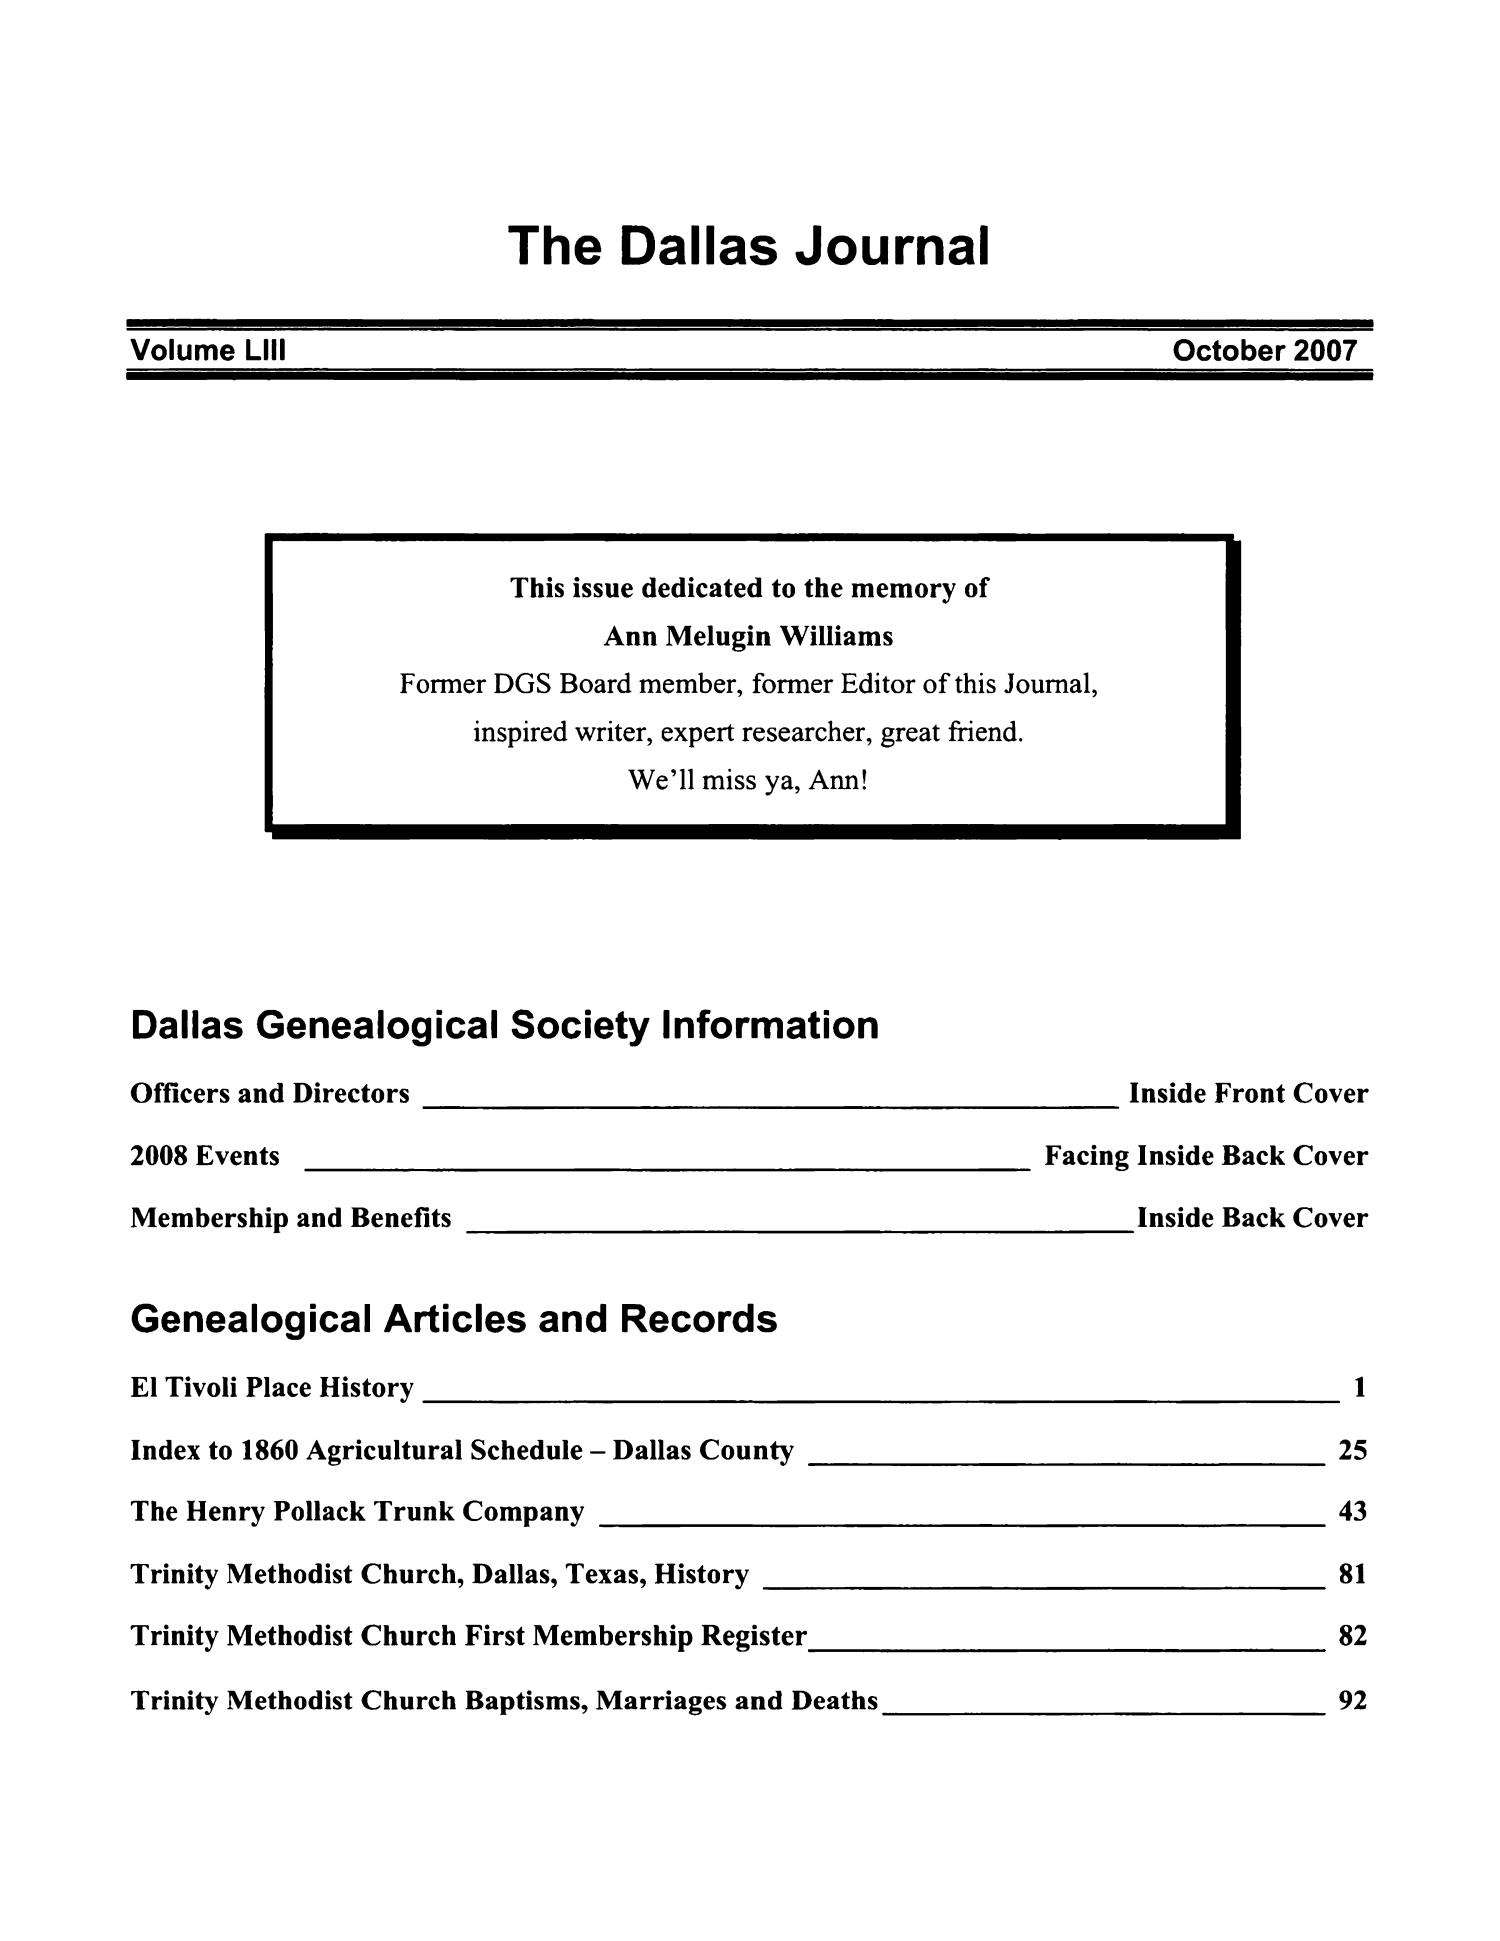 The Dallas Journal, Volume 53, 2007                                                                                                      Title Page